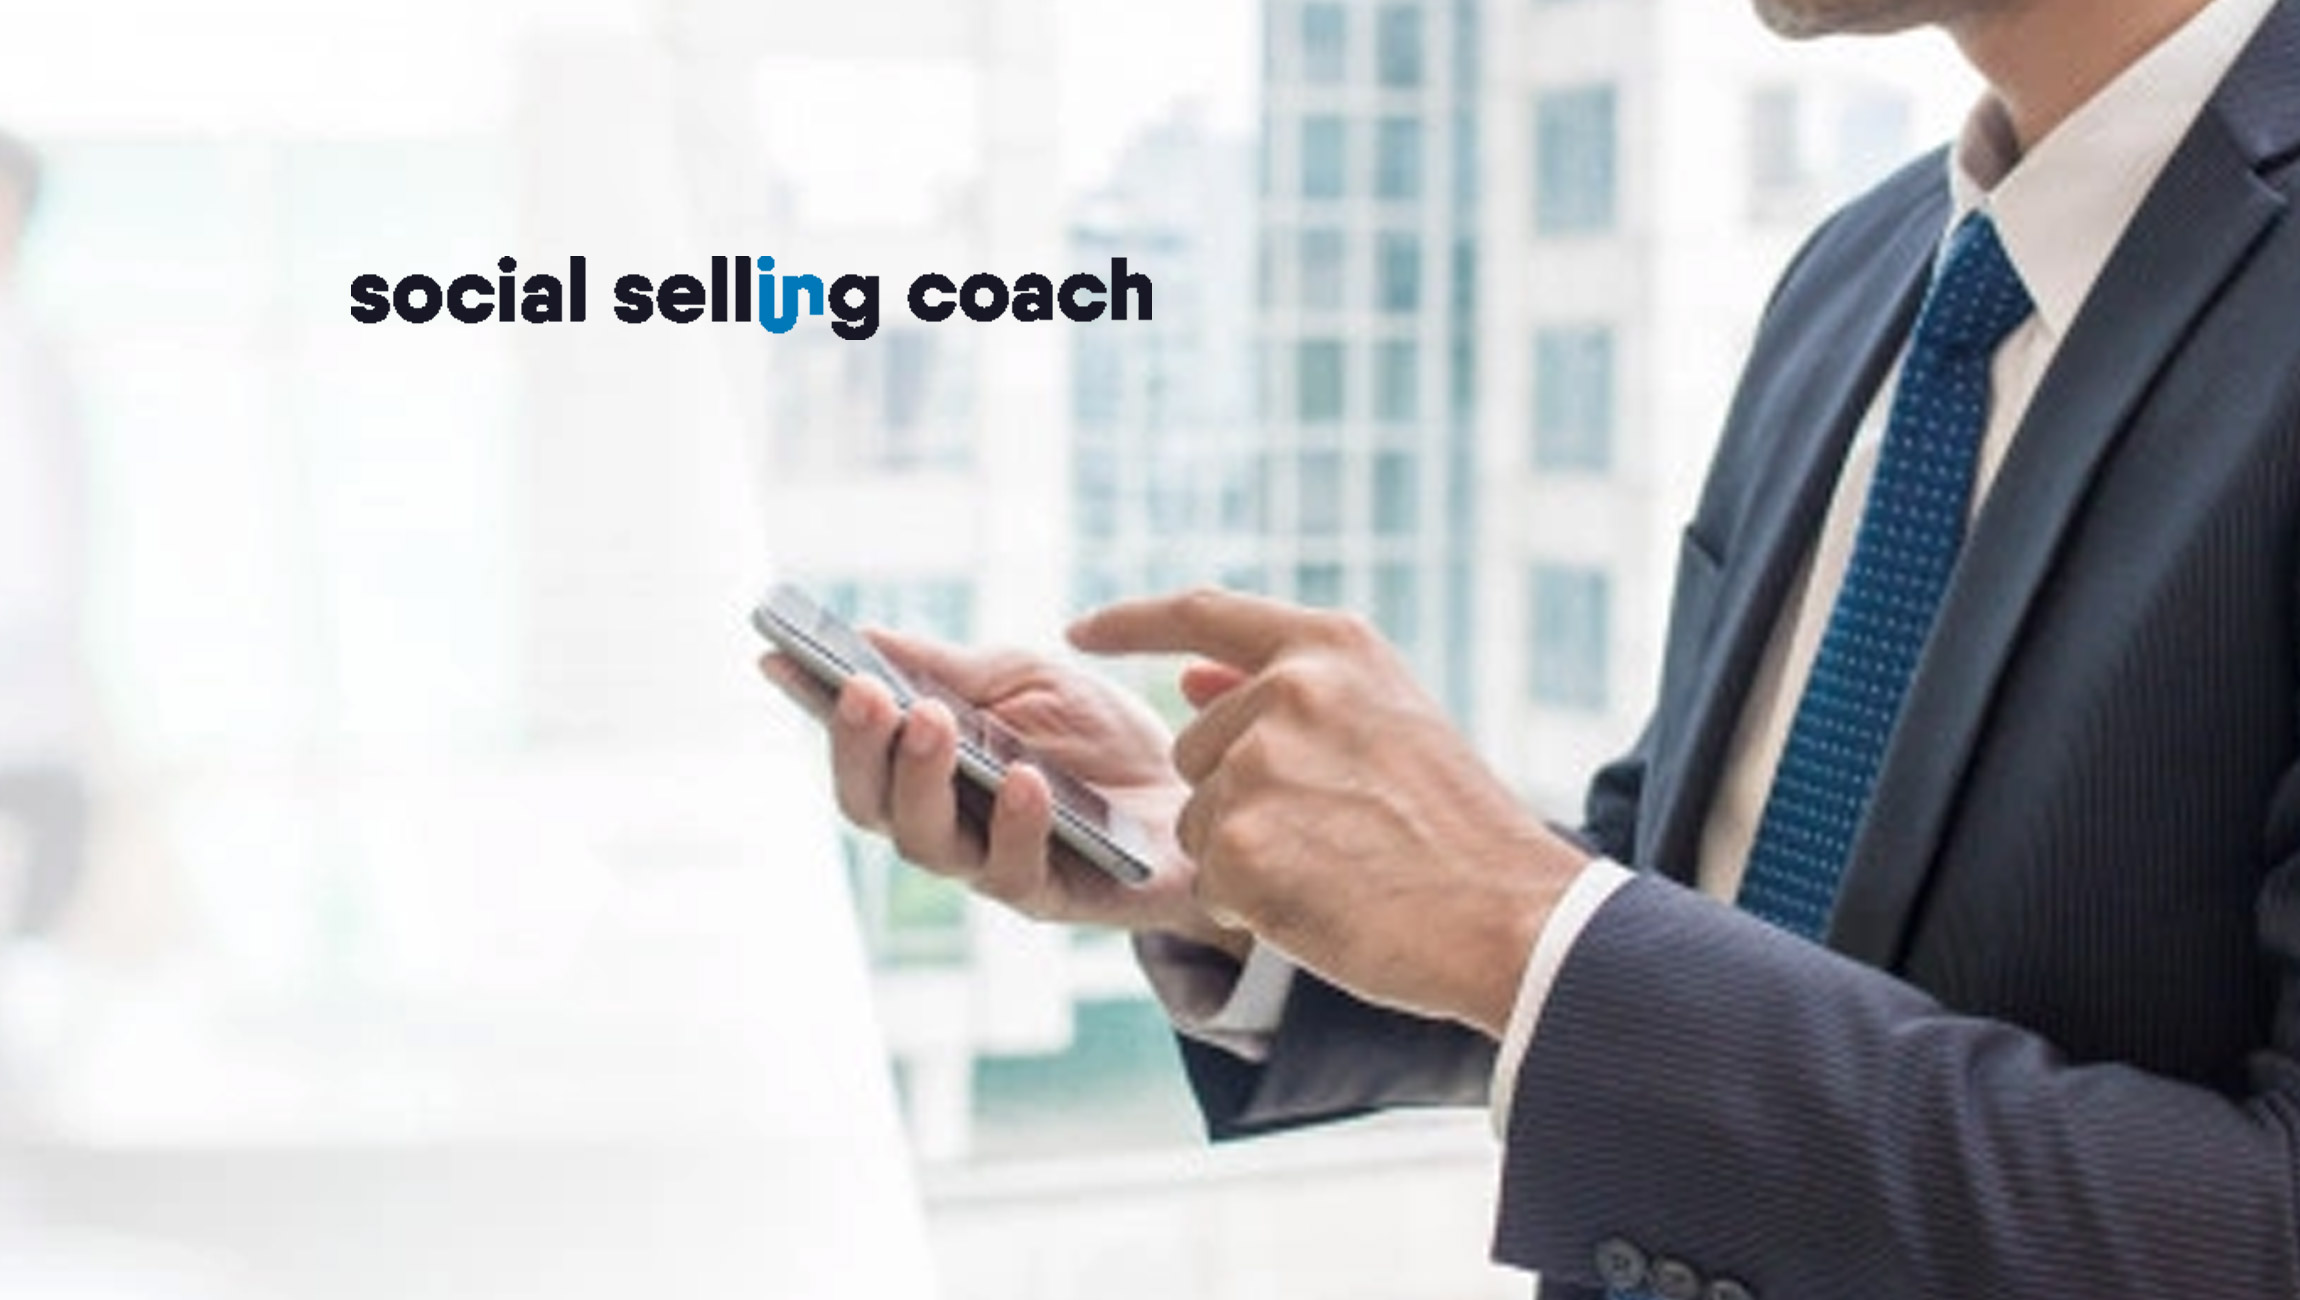 Social-Selling-Coach-Launches-New-AI-Based-Platform-to-Help-Companies-Build-Brands-on-LinkedIn